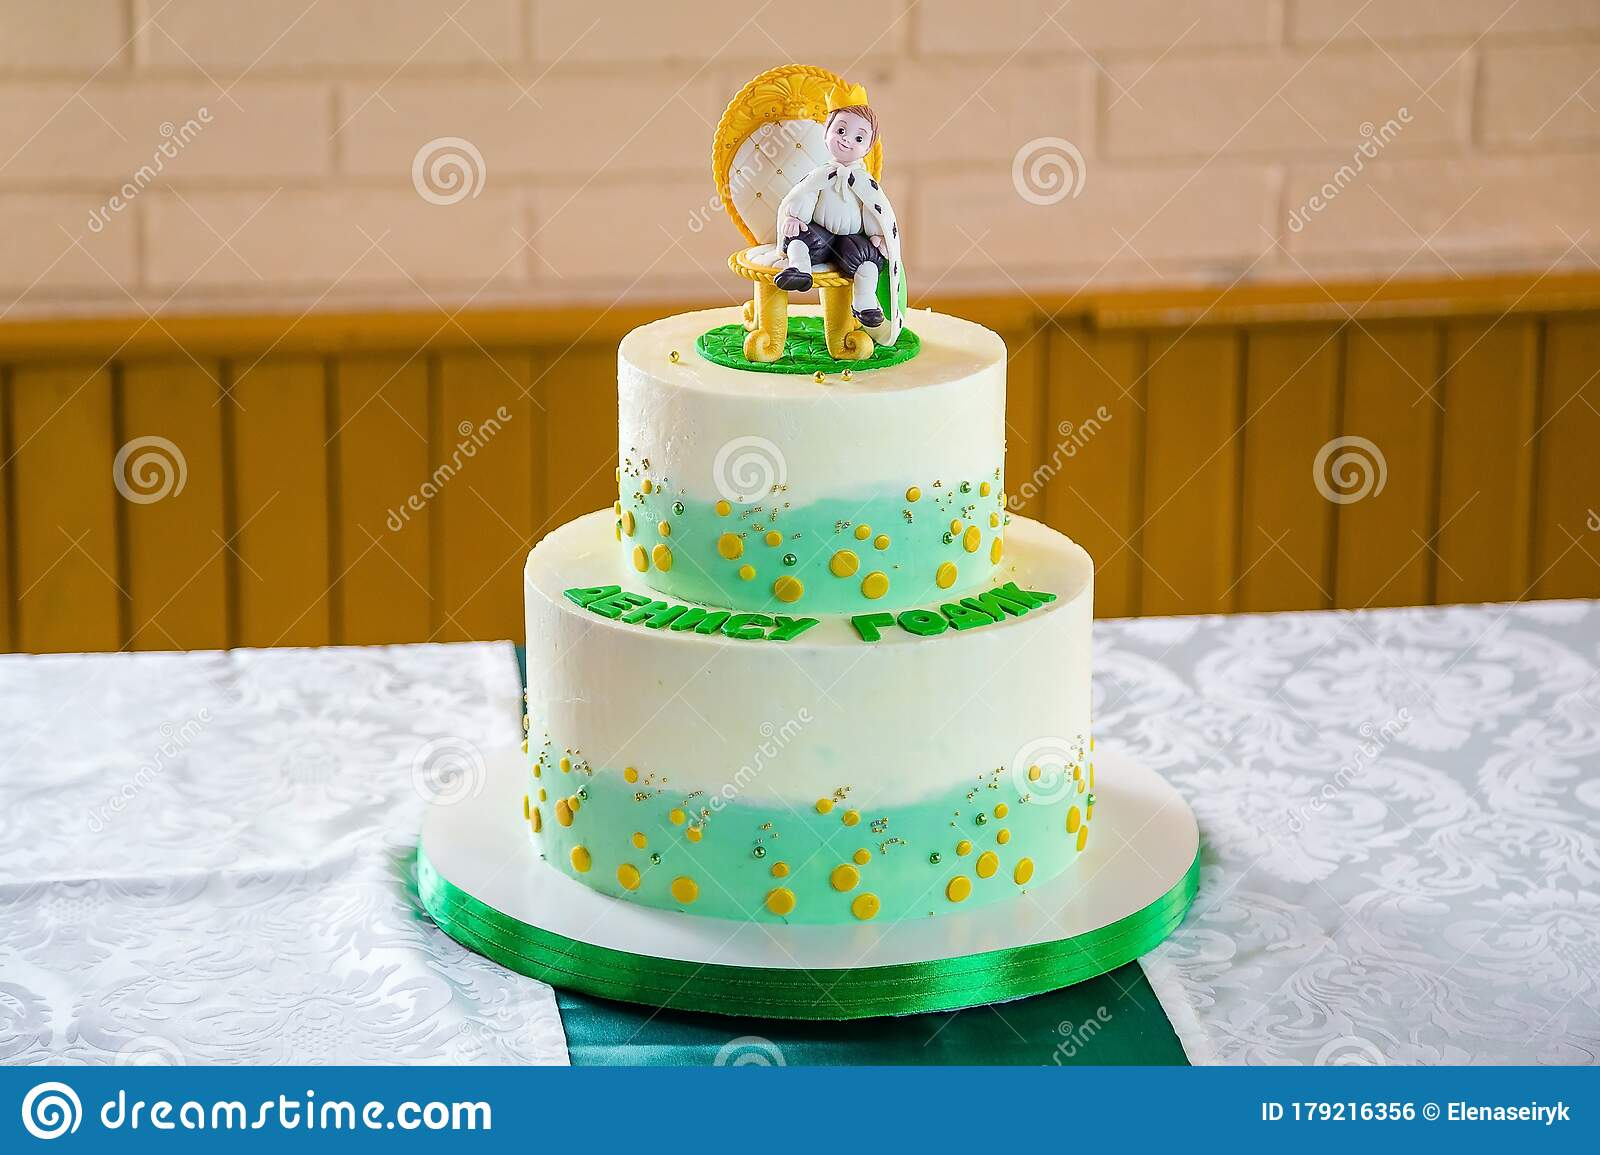 Awe Inspiring Birthday Cake For Boy With Little Prince Character Sugar Mastic Birthday Cards Printable Benkemecafe Filternl